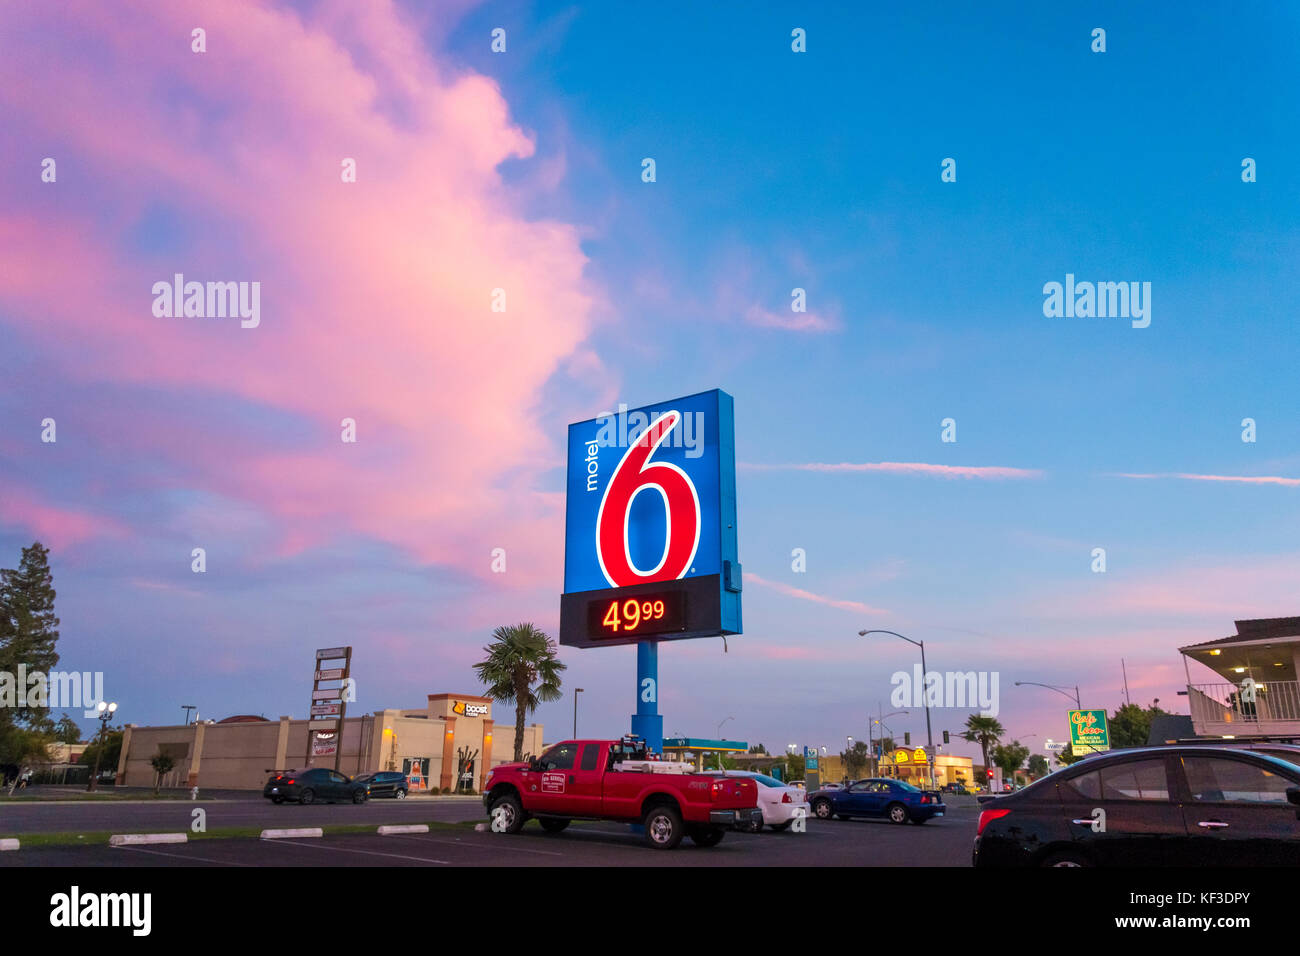 Motel 6 sign with low price of 49.99 in Fresno CA at sunset - Stock Image